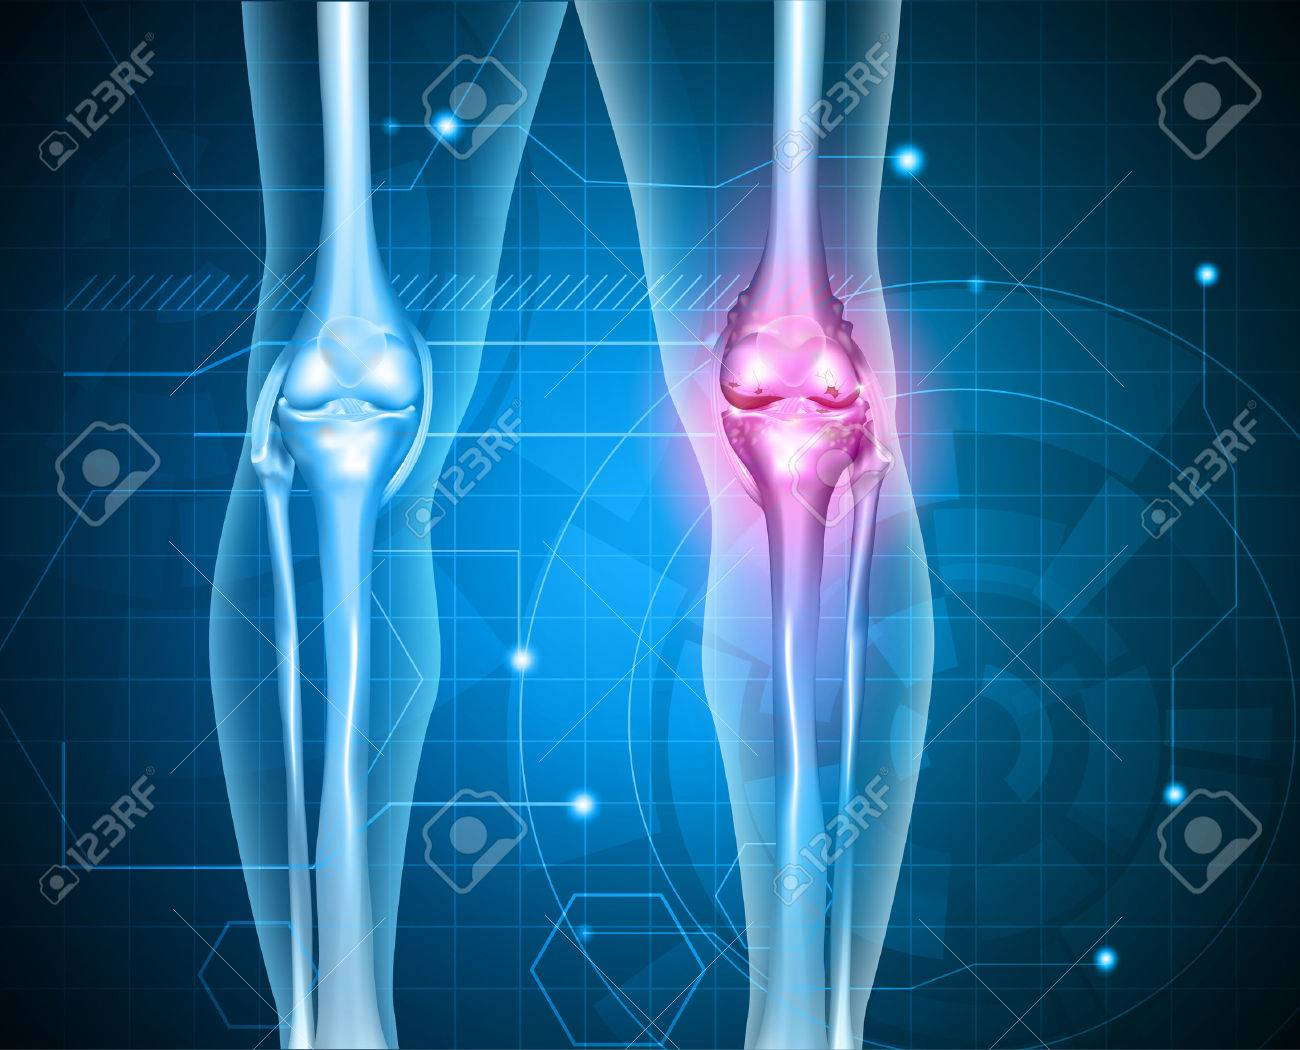 Knee pain abstract background. Healthy joint and unhealthy painful joint with osteoarthritis. - 39409566